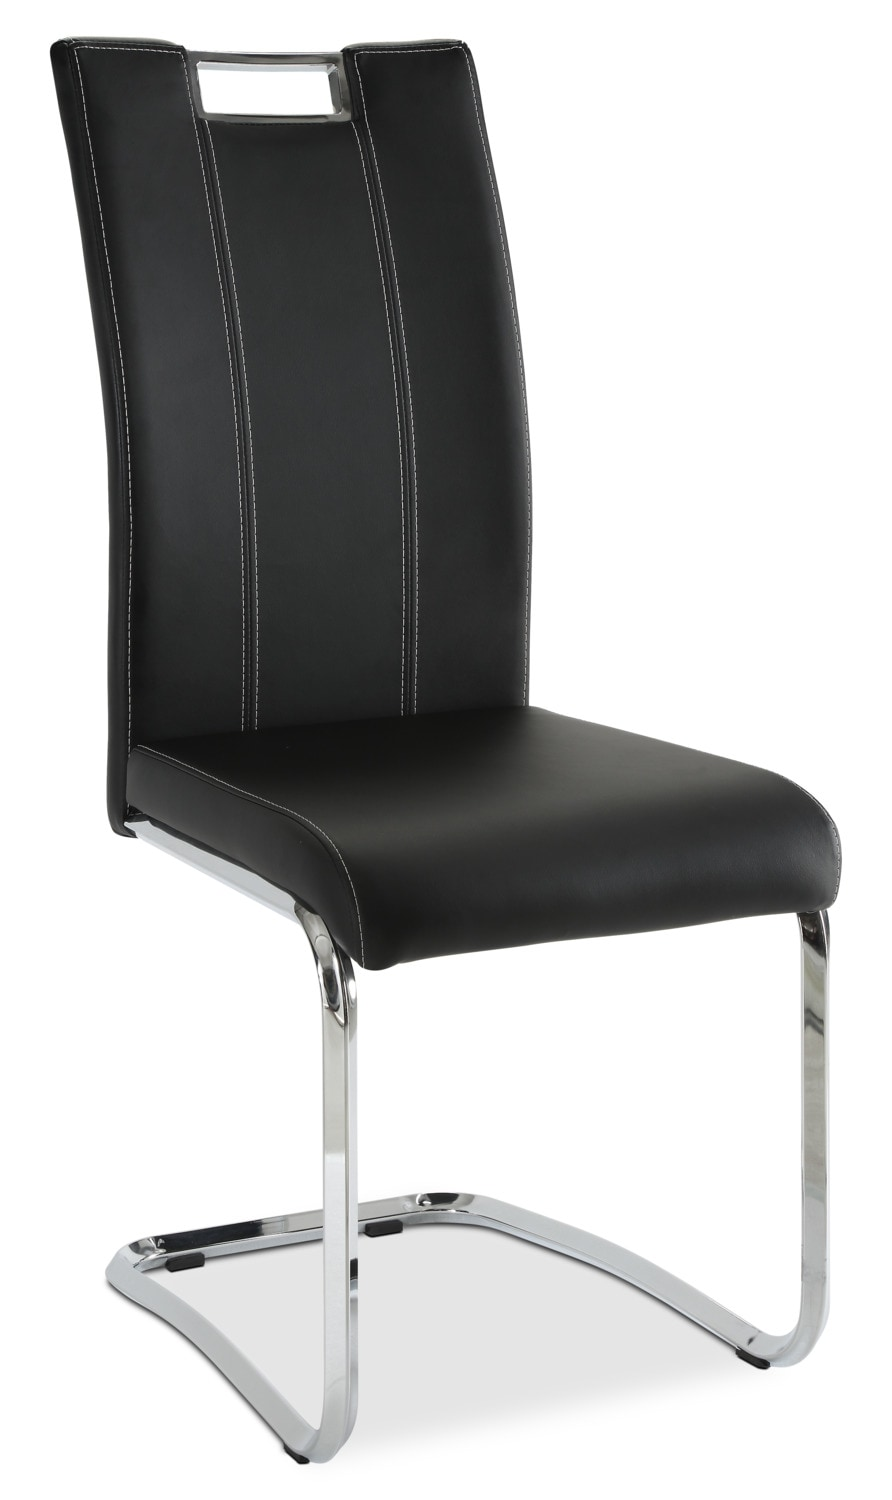 Dining Room Furniture - Tuxedo Dining Chair – Black